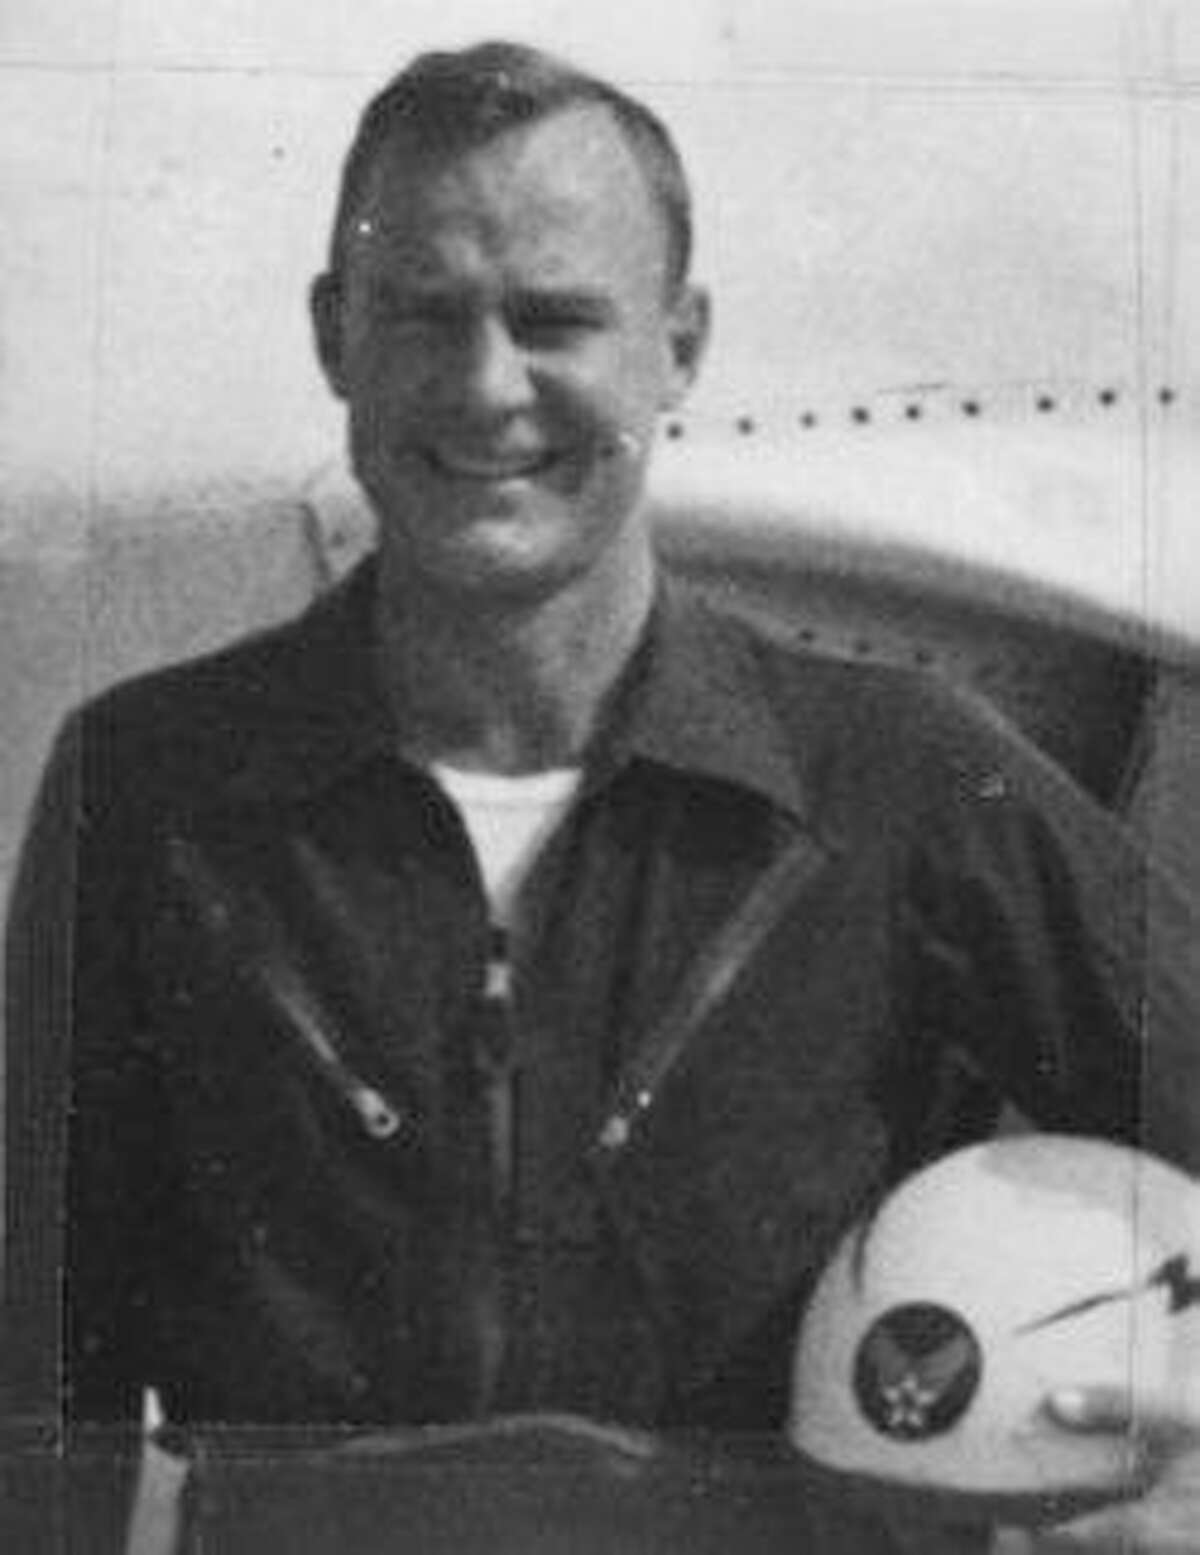 Capt. Joseph N. Eberle was just 27 but already an experienced pilot who died in 1953 in an air crash at Randolph AFB. Eberle was declared a hero because he opted to stay with his disabled jet to steer it away from family base housing.